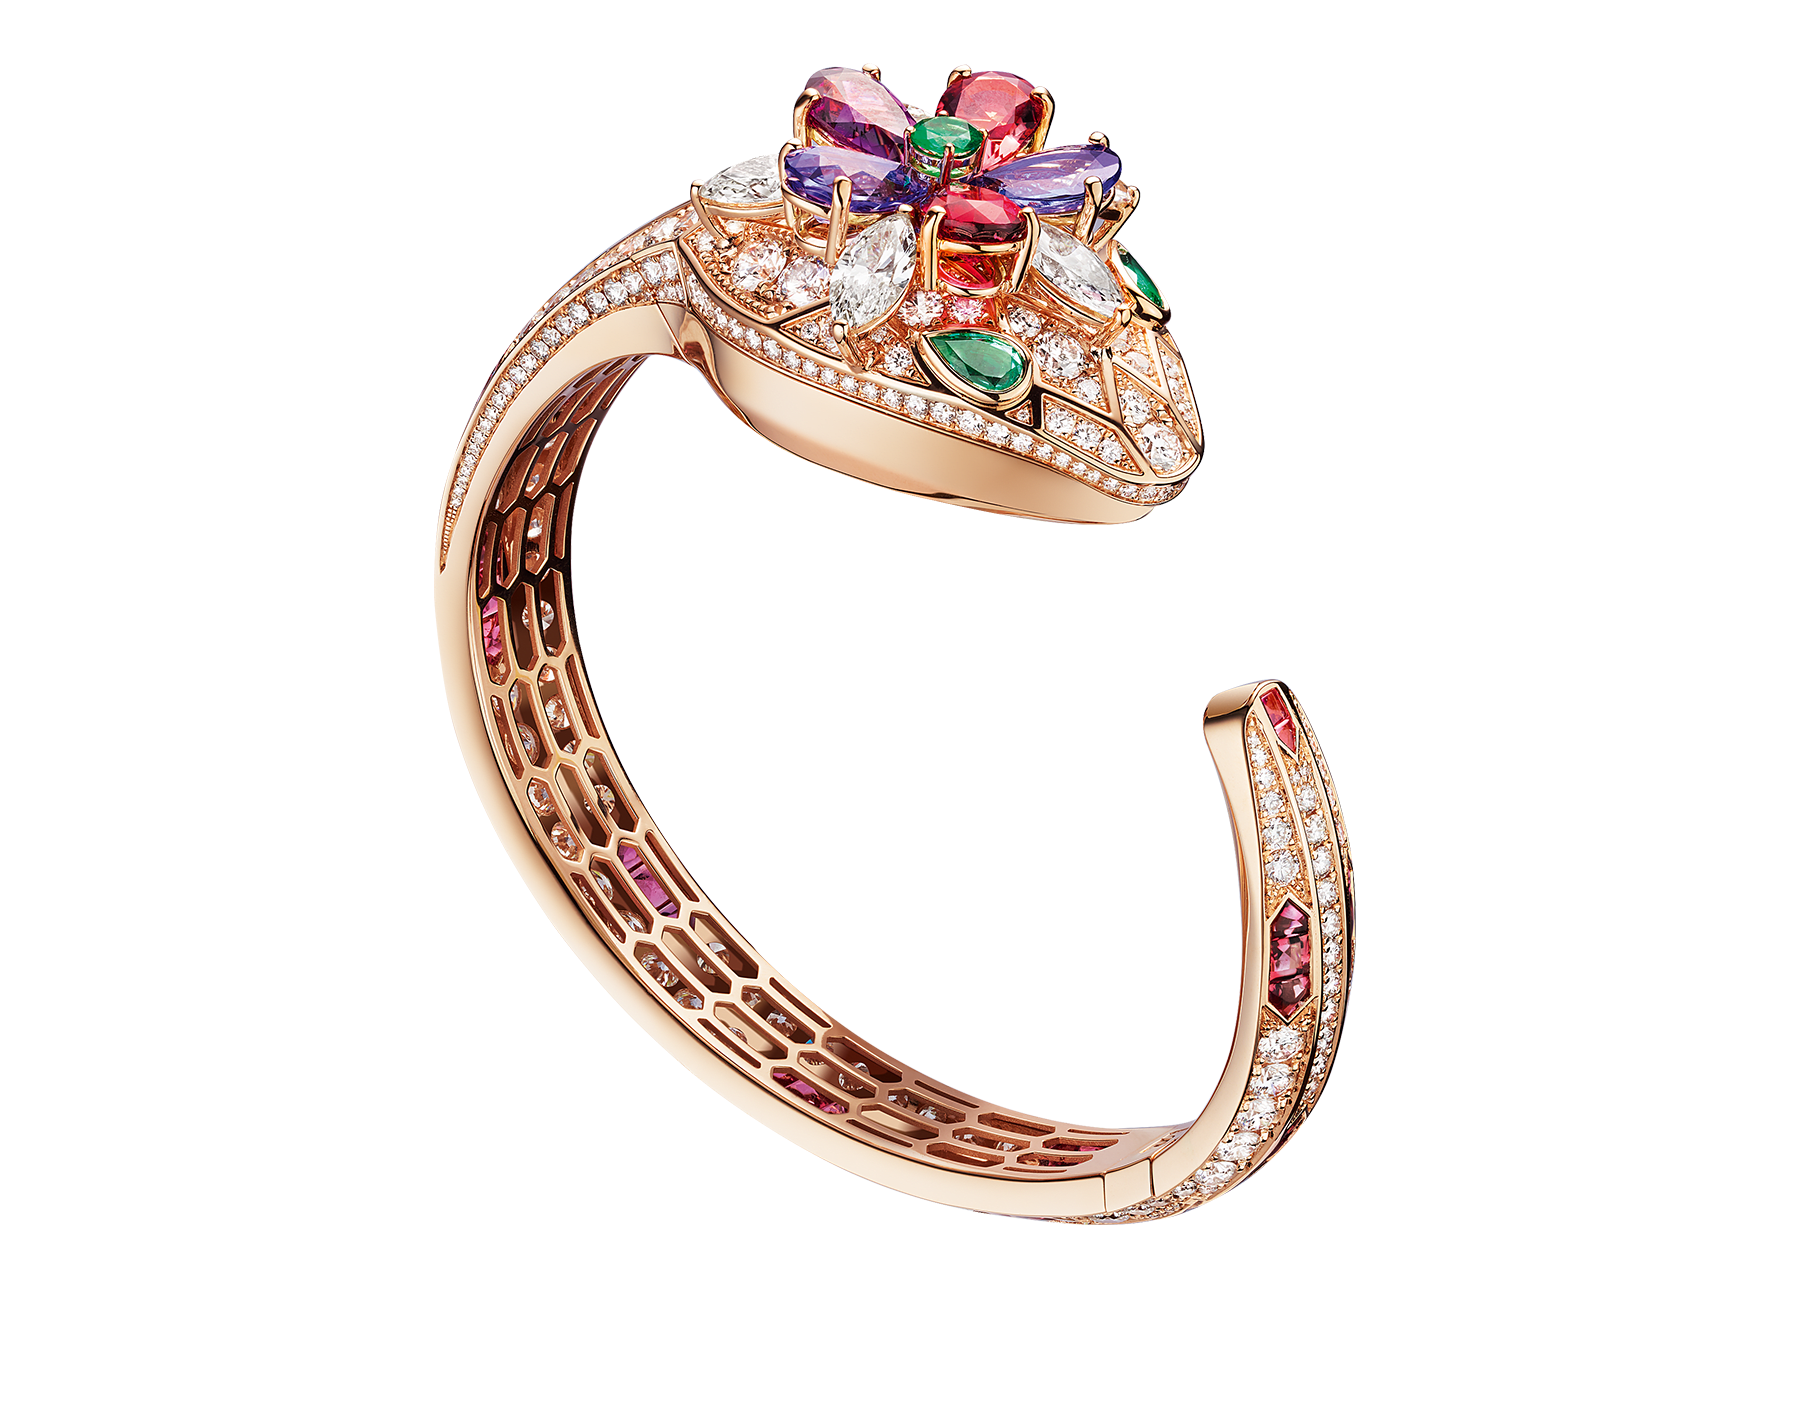 Serpenti Seduttori watch with 18 kt rose gold head set with brilliant cut and navette cut diamonds, pear shaped rubellite, tourmaline, tanzanite and violet garnets, one round cut emerald and two emerald eyes, 18 kt rose gold case, 18 kt rose gold dial set with brilliant cut diamonds, 18 kt rose gold bracelet set with brilliant cut diamonds and baguette tourmalines. 102823 image 1